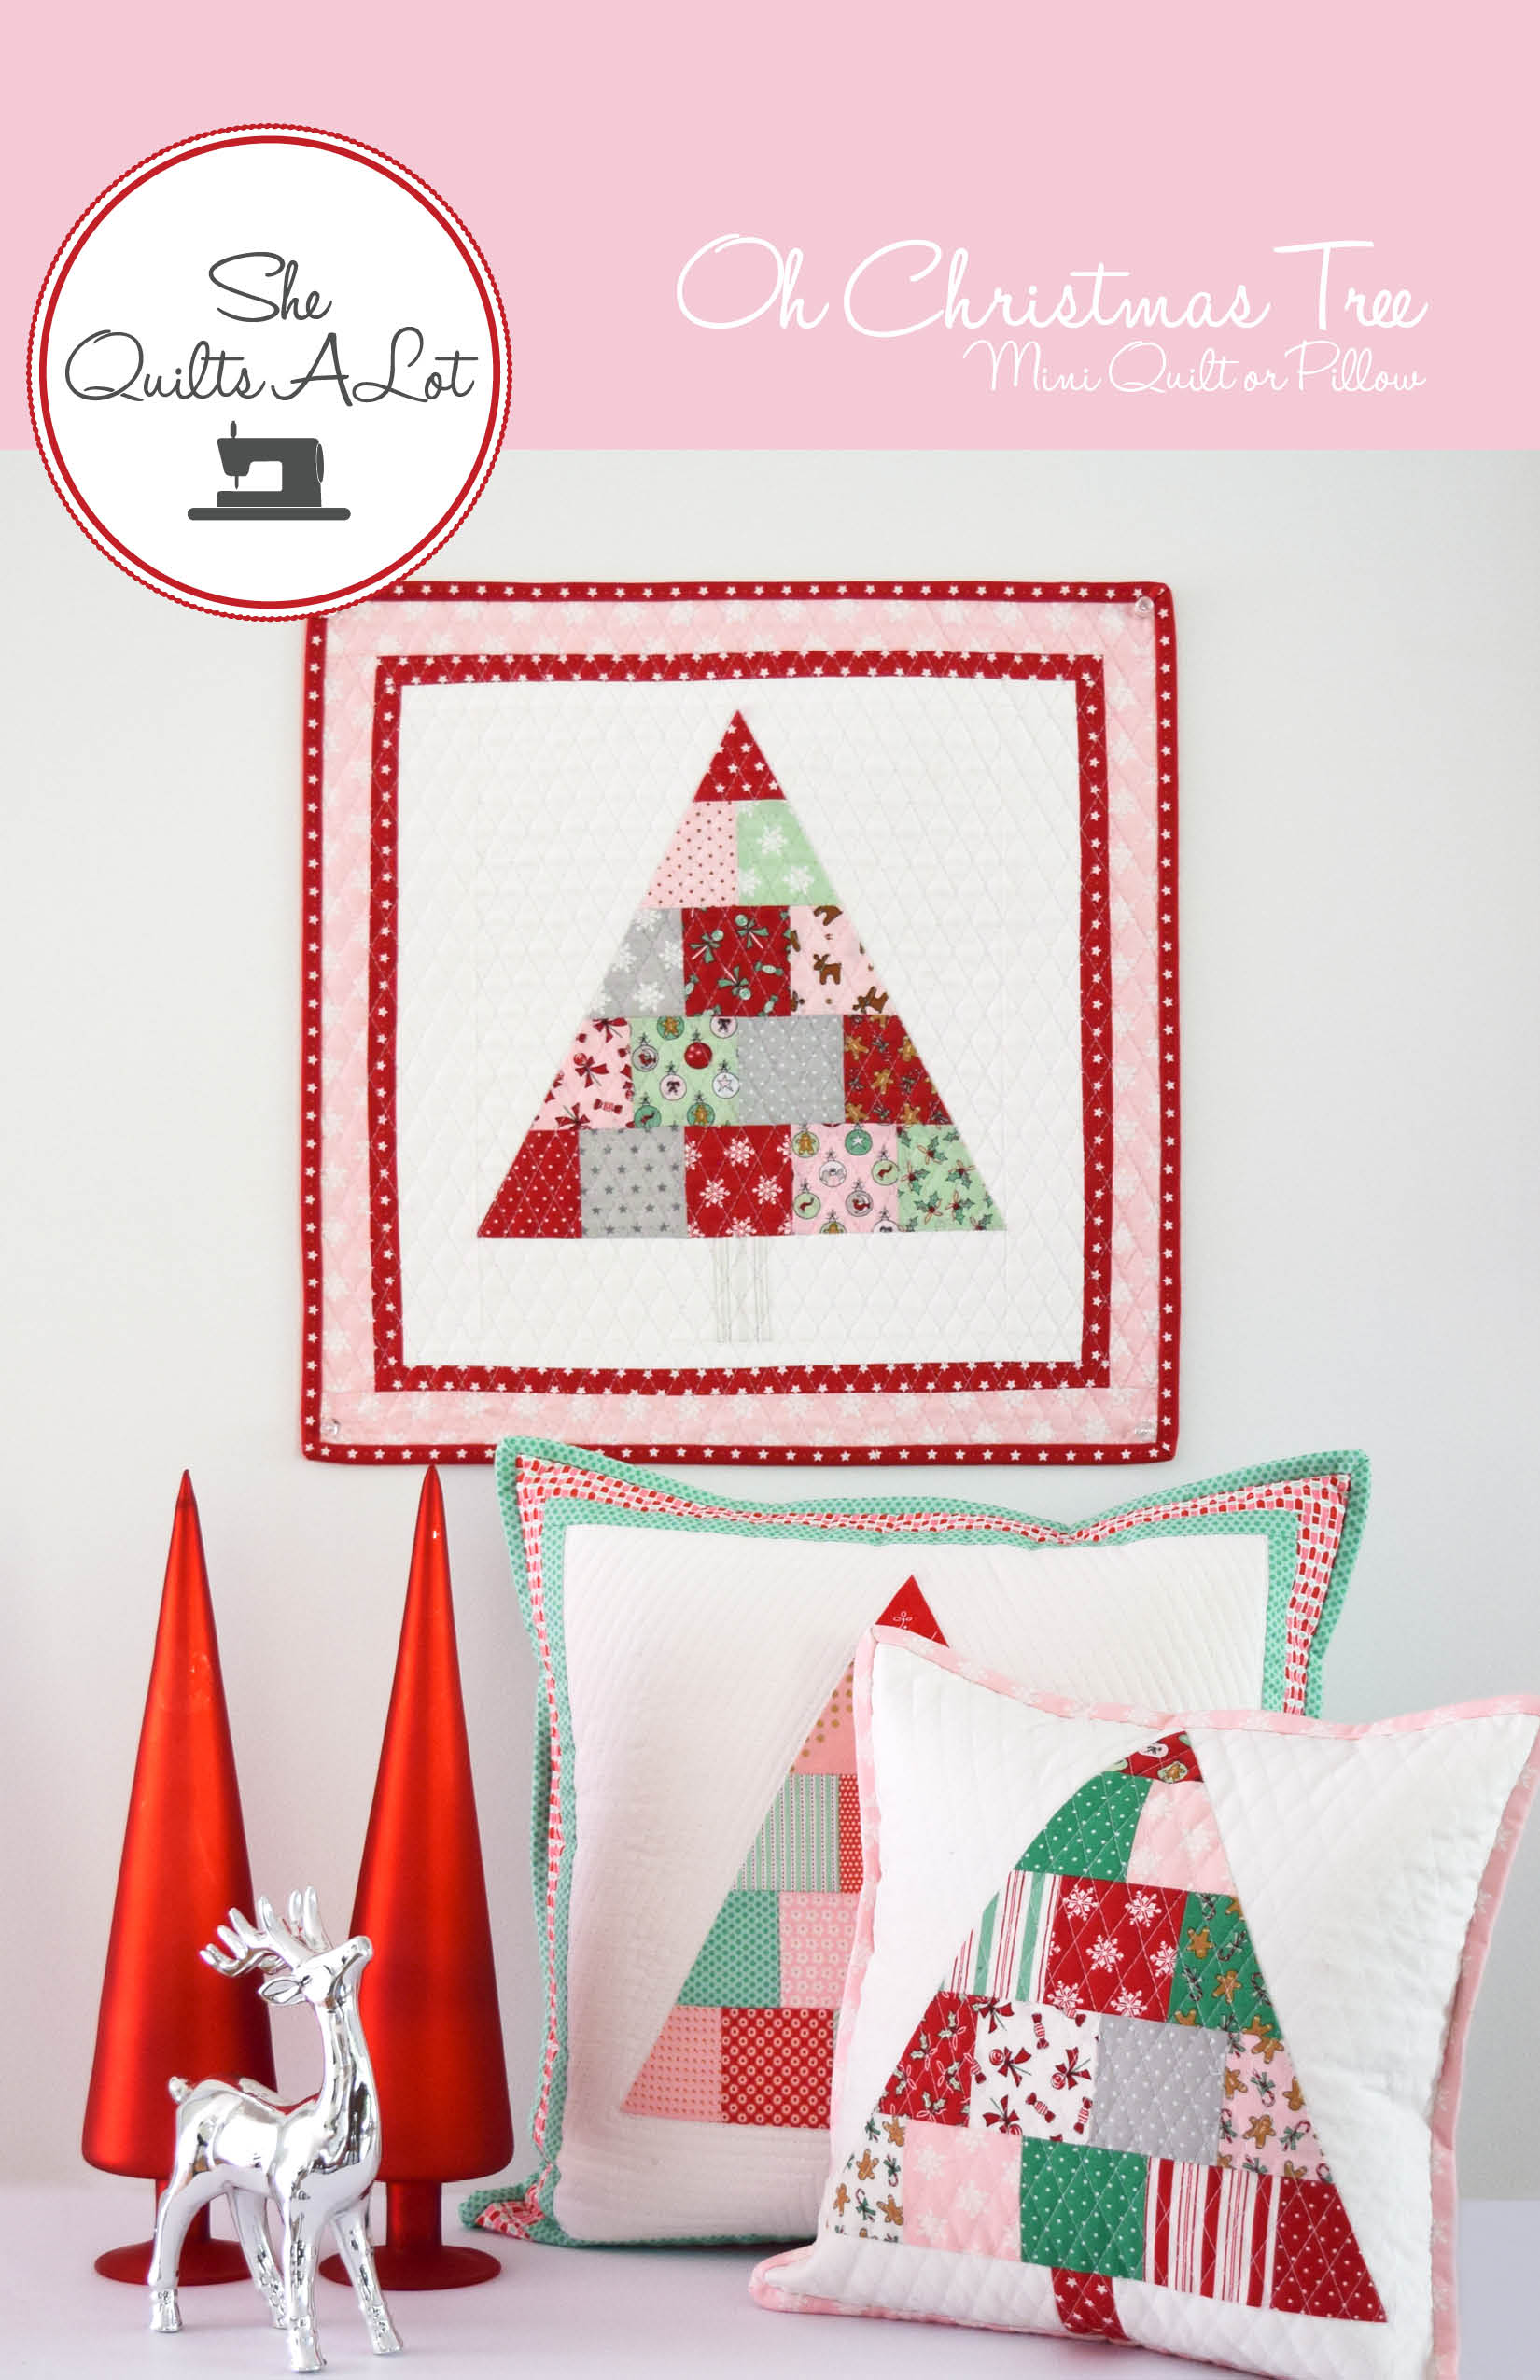 Christmas Tree Mini Quilt & Pillow PDF Pattern | She Quilts Alot